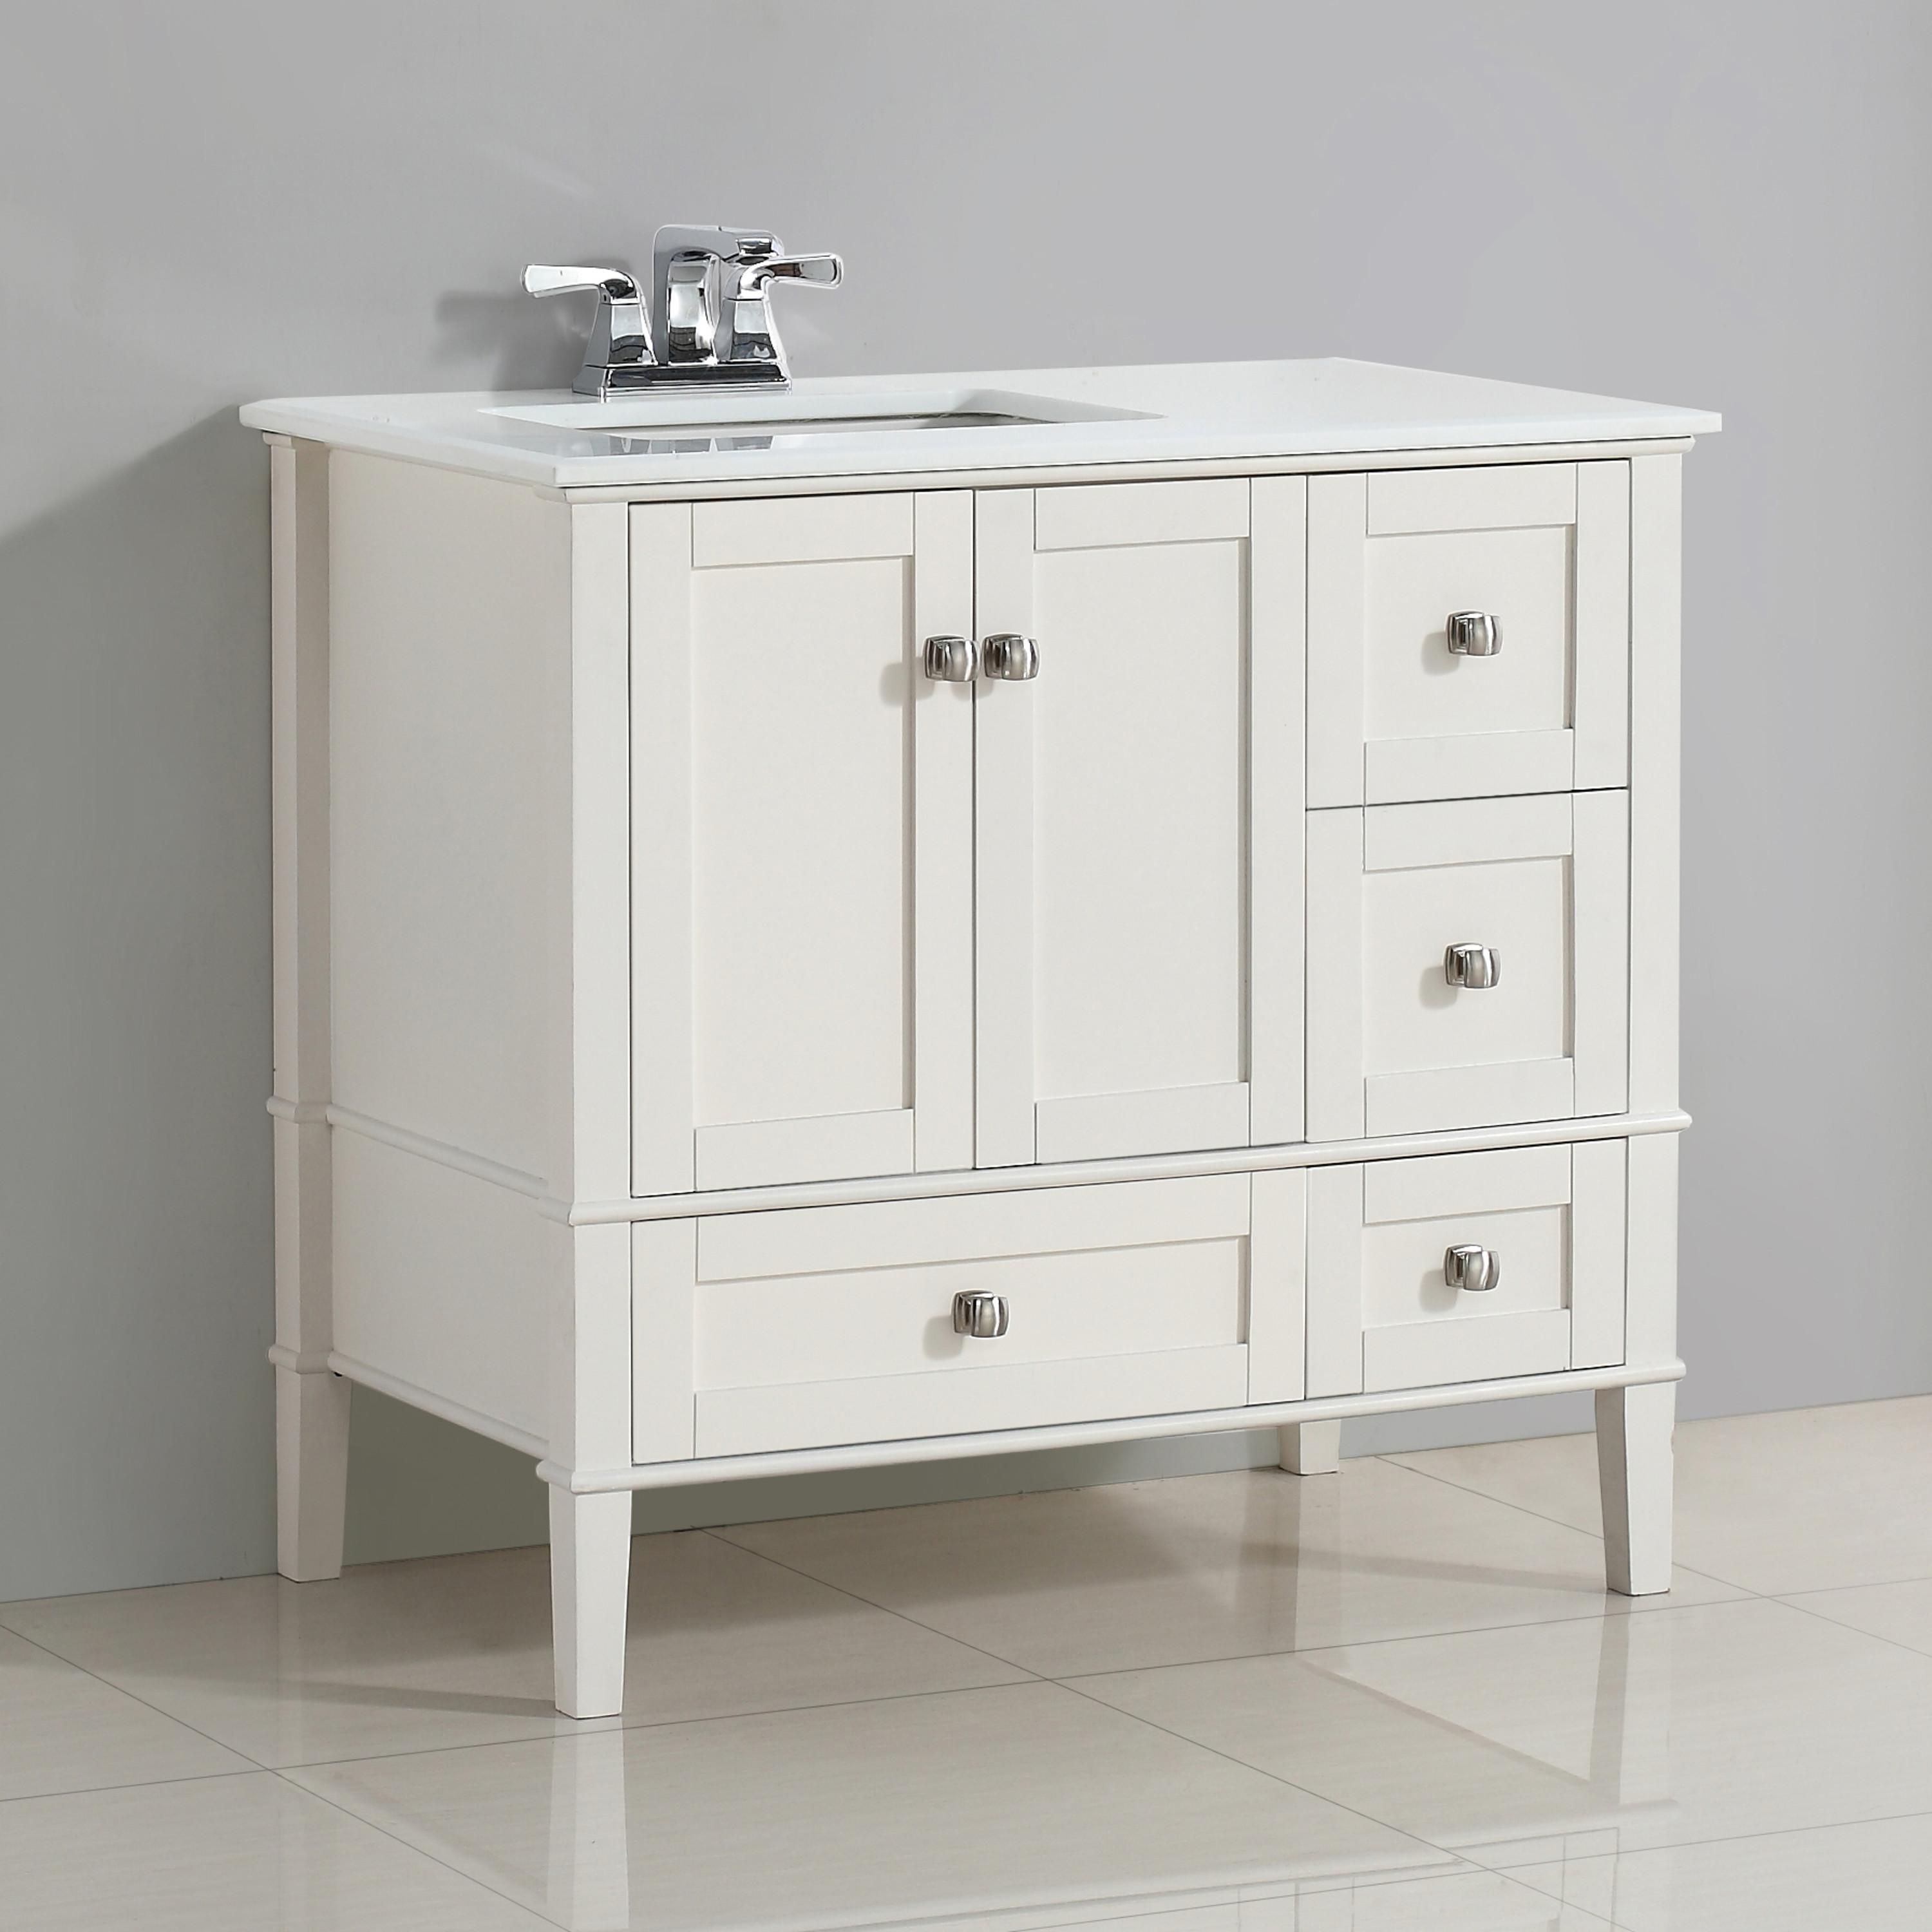 Simpli Home Nl Hhv029 36 2a L Chelsea 36 Inch Contemporary Bath Vanity In Soft White